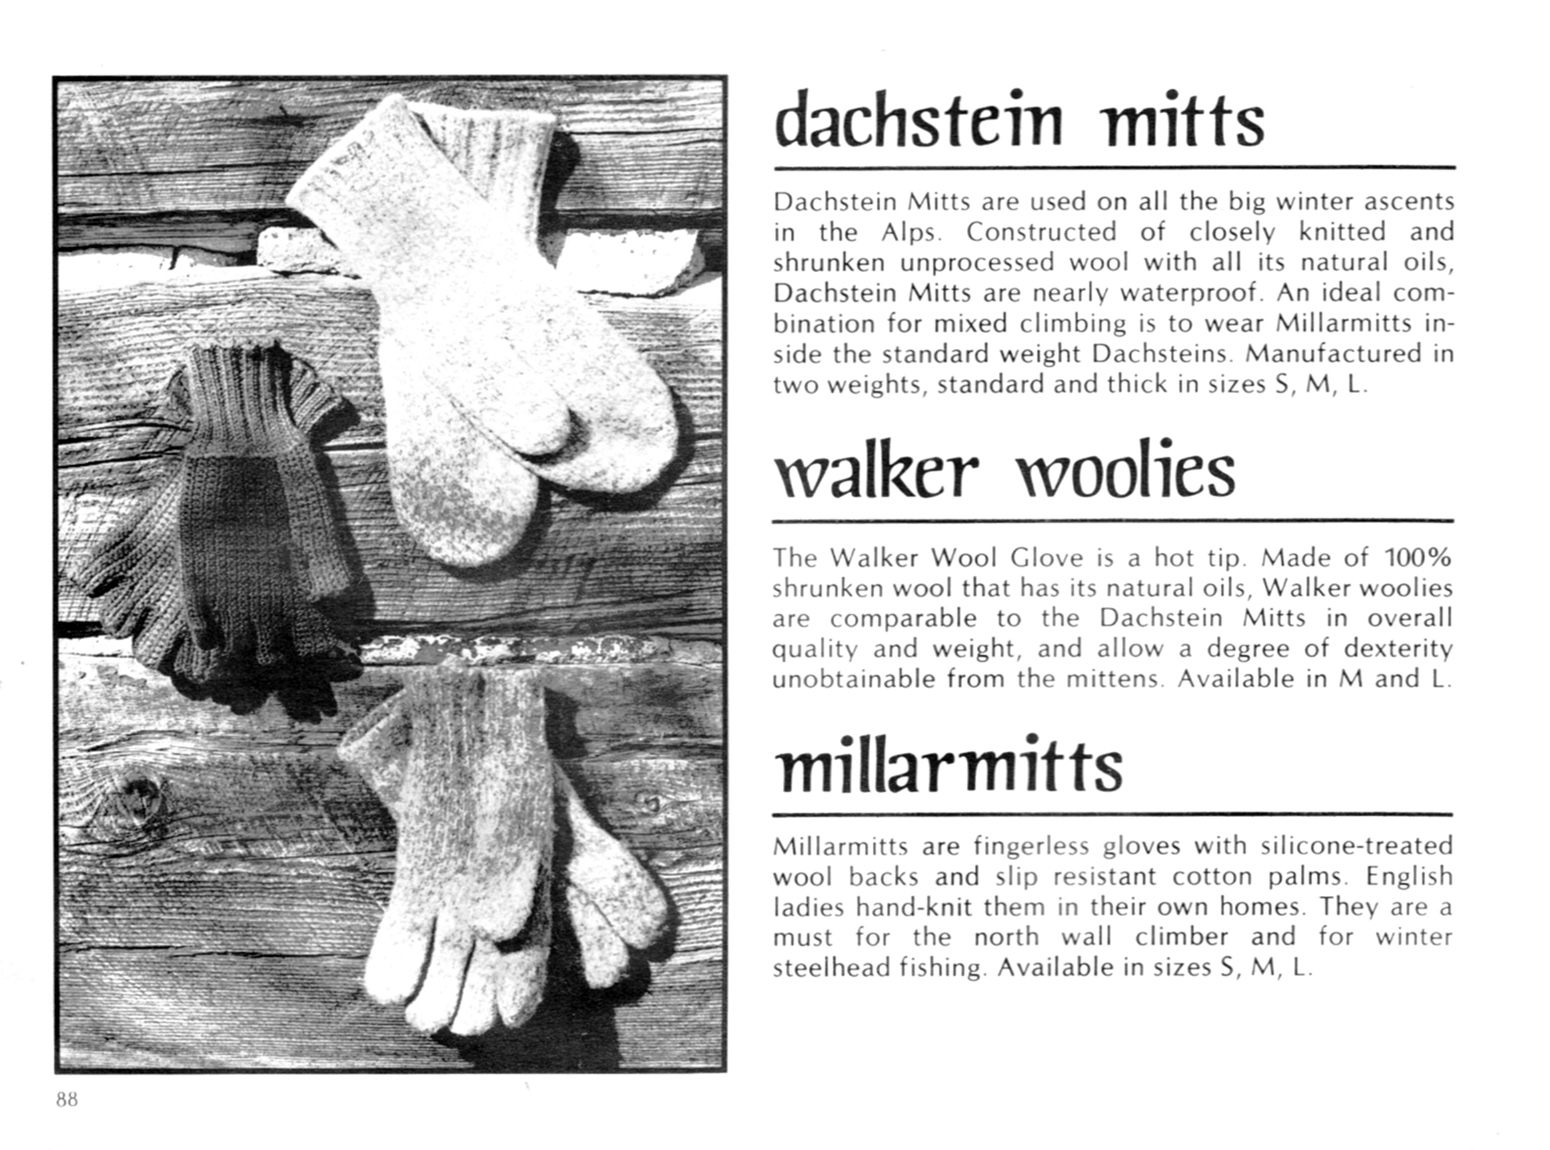 Fingerless gloves edmonton - Millarmitts Offered By Patagonia Circa 1975 Full Catalog Scan Here